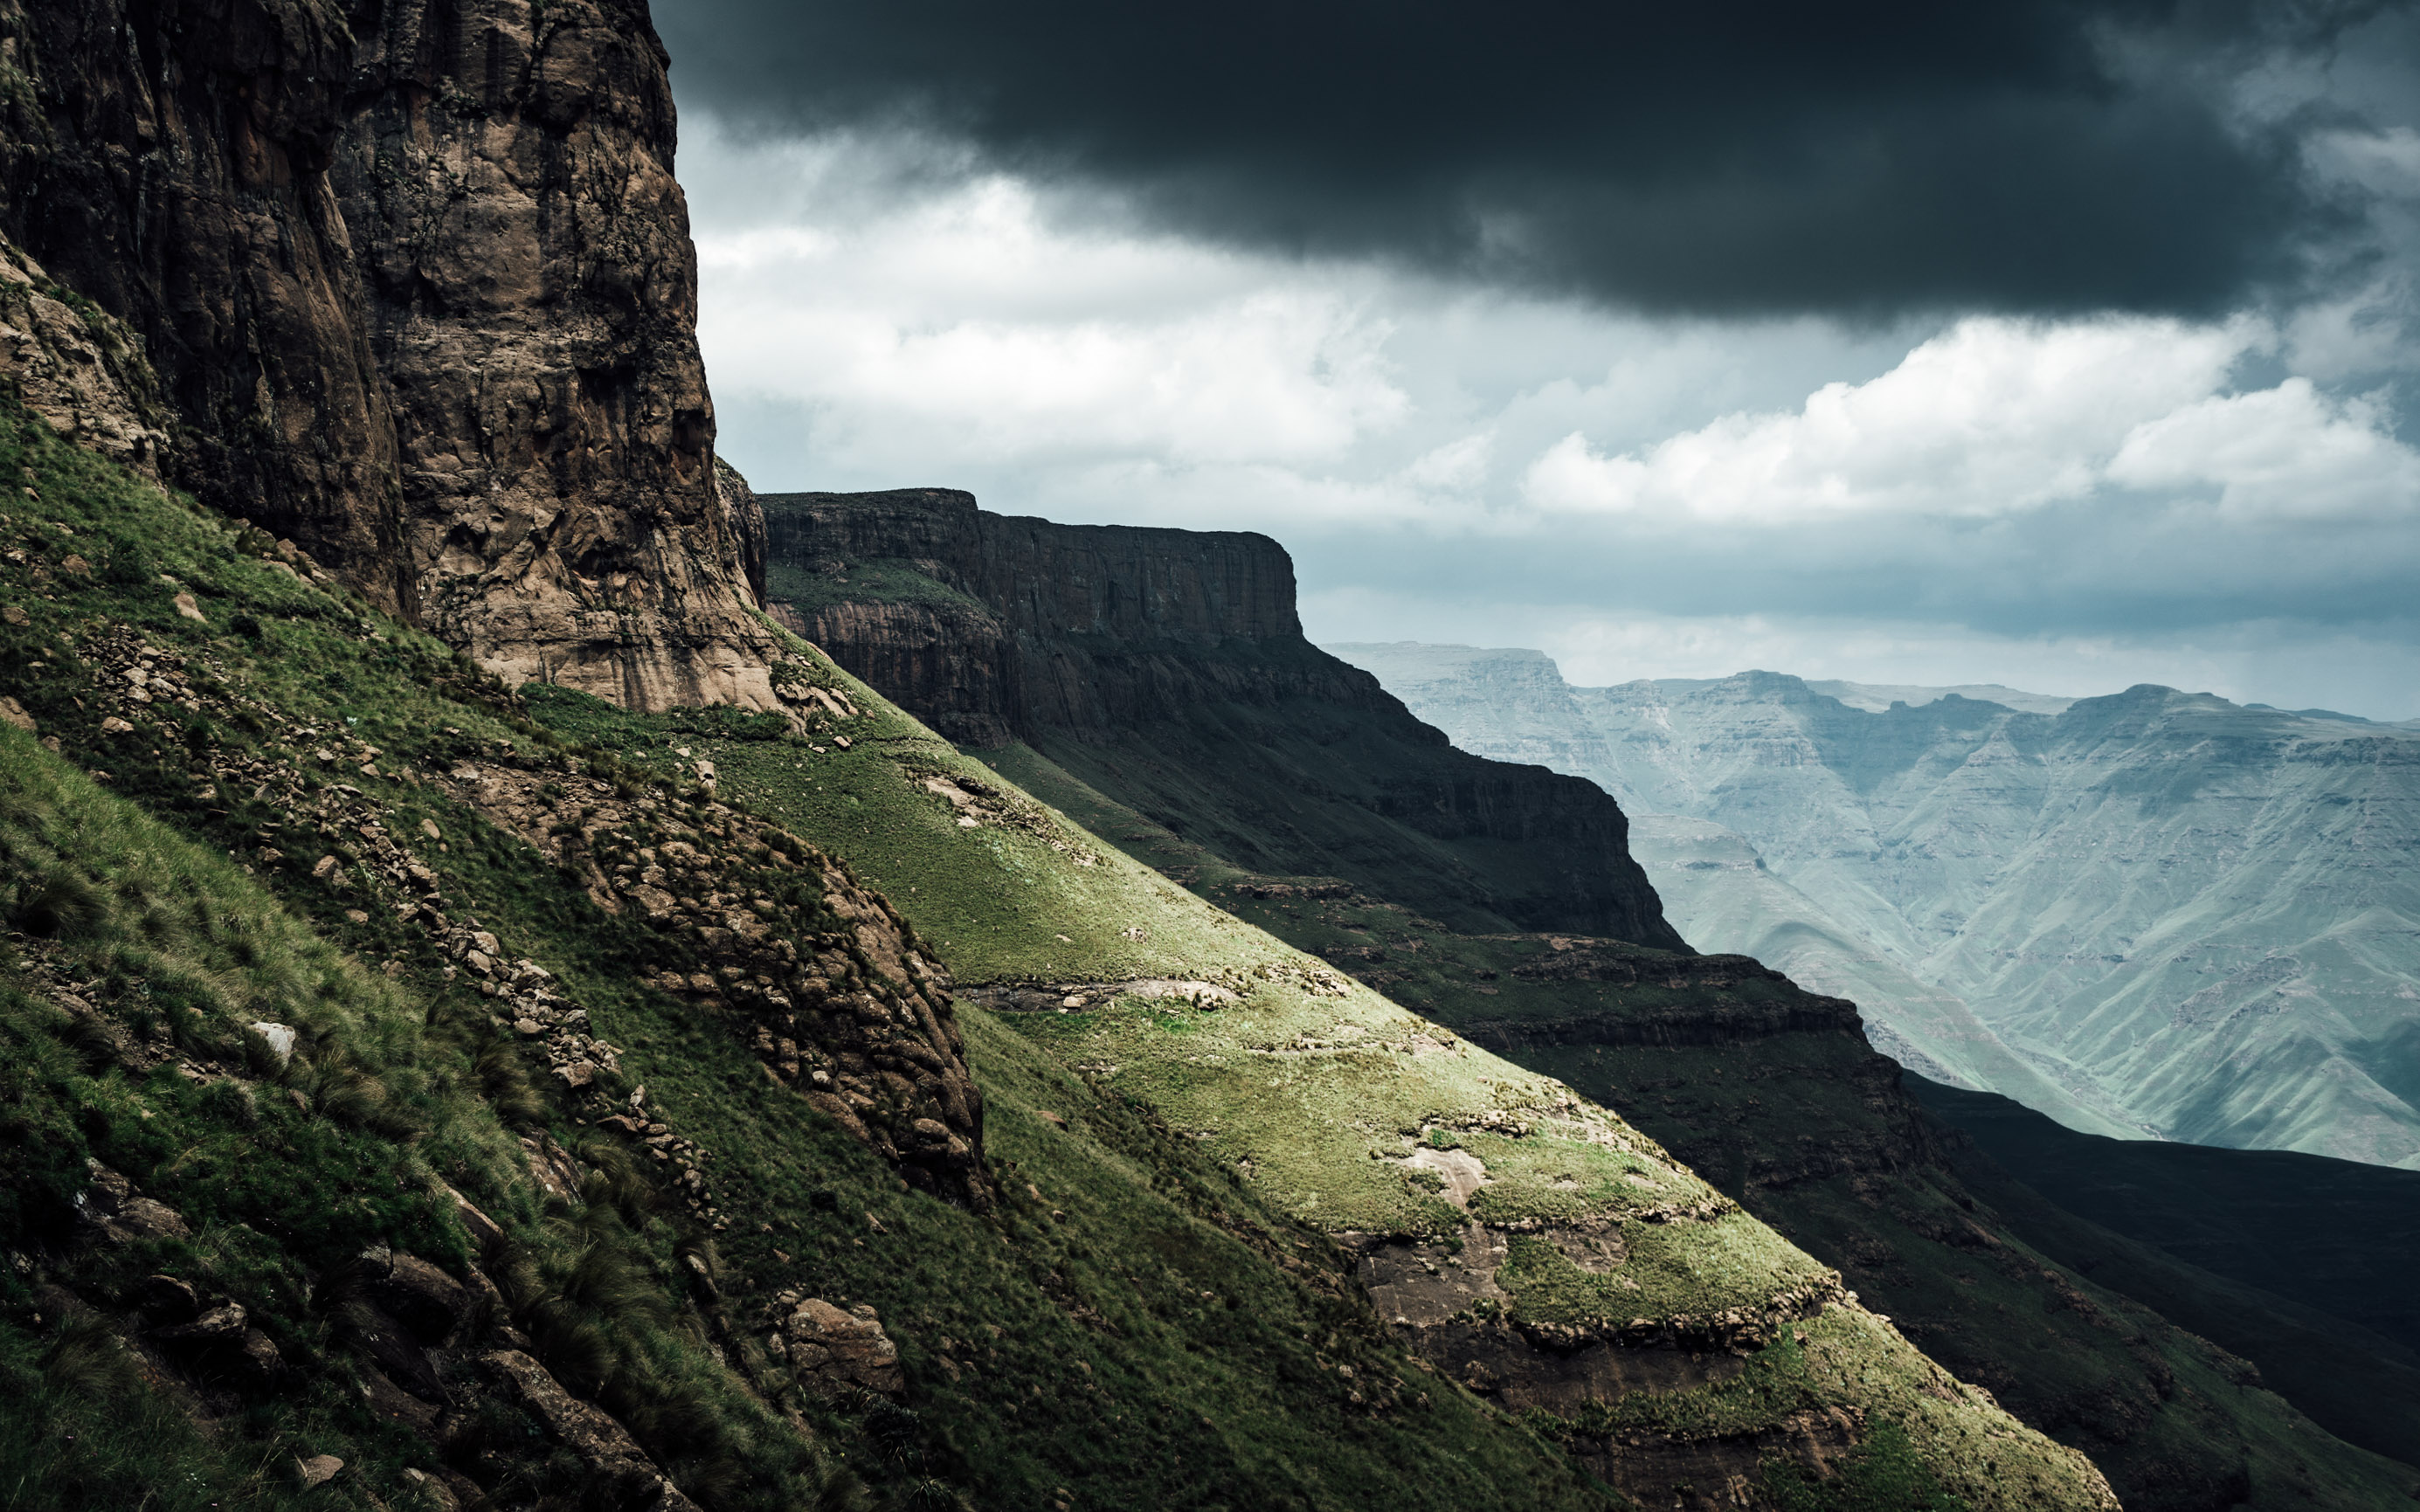 bernstein photodesign Drakensberg Mountains